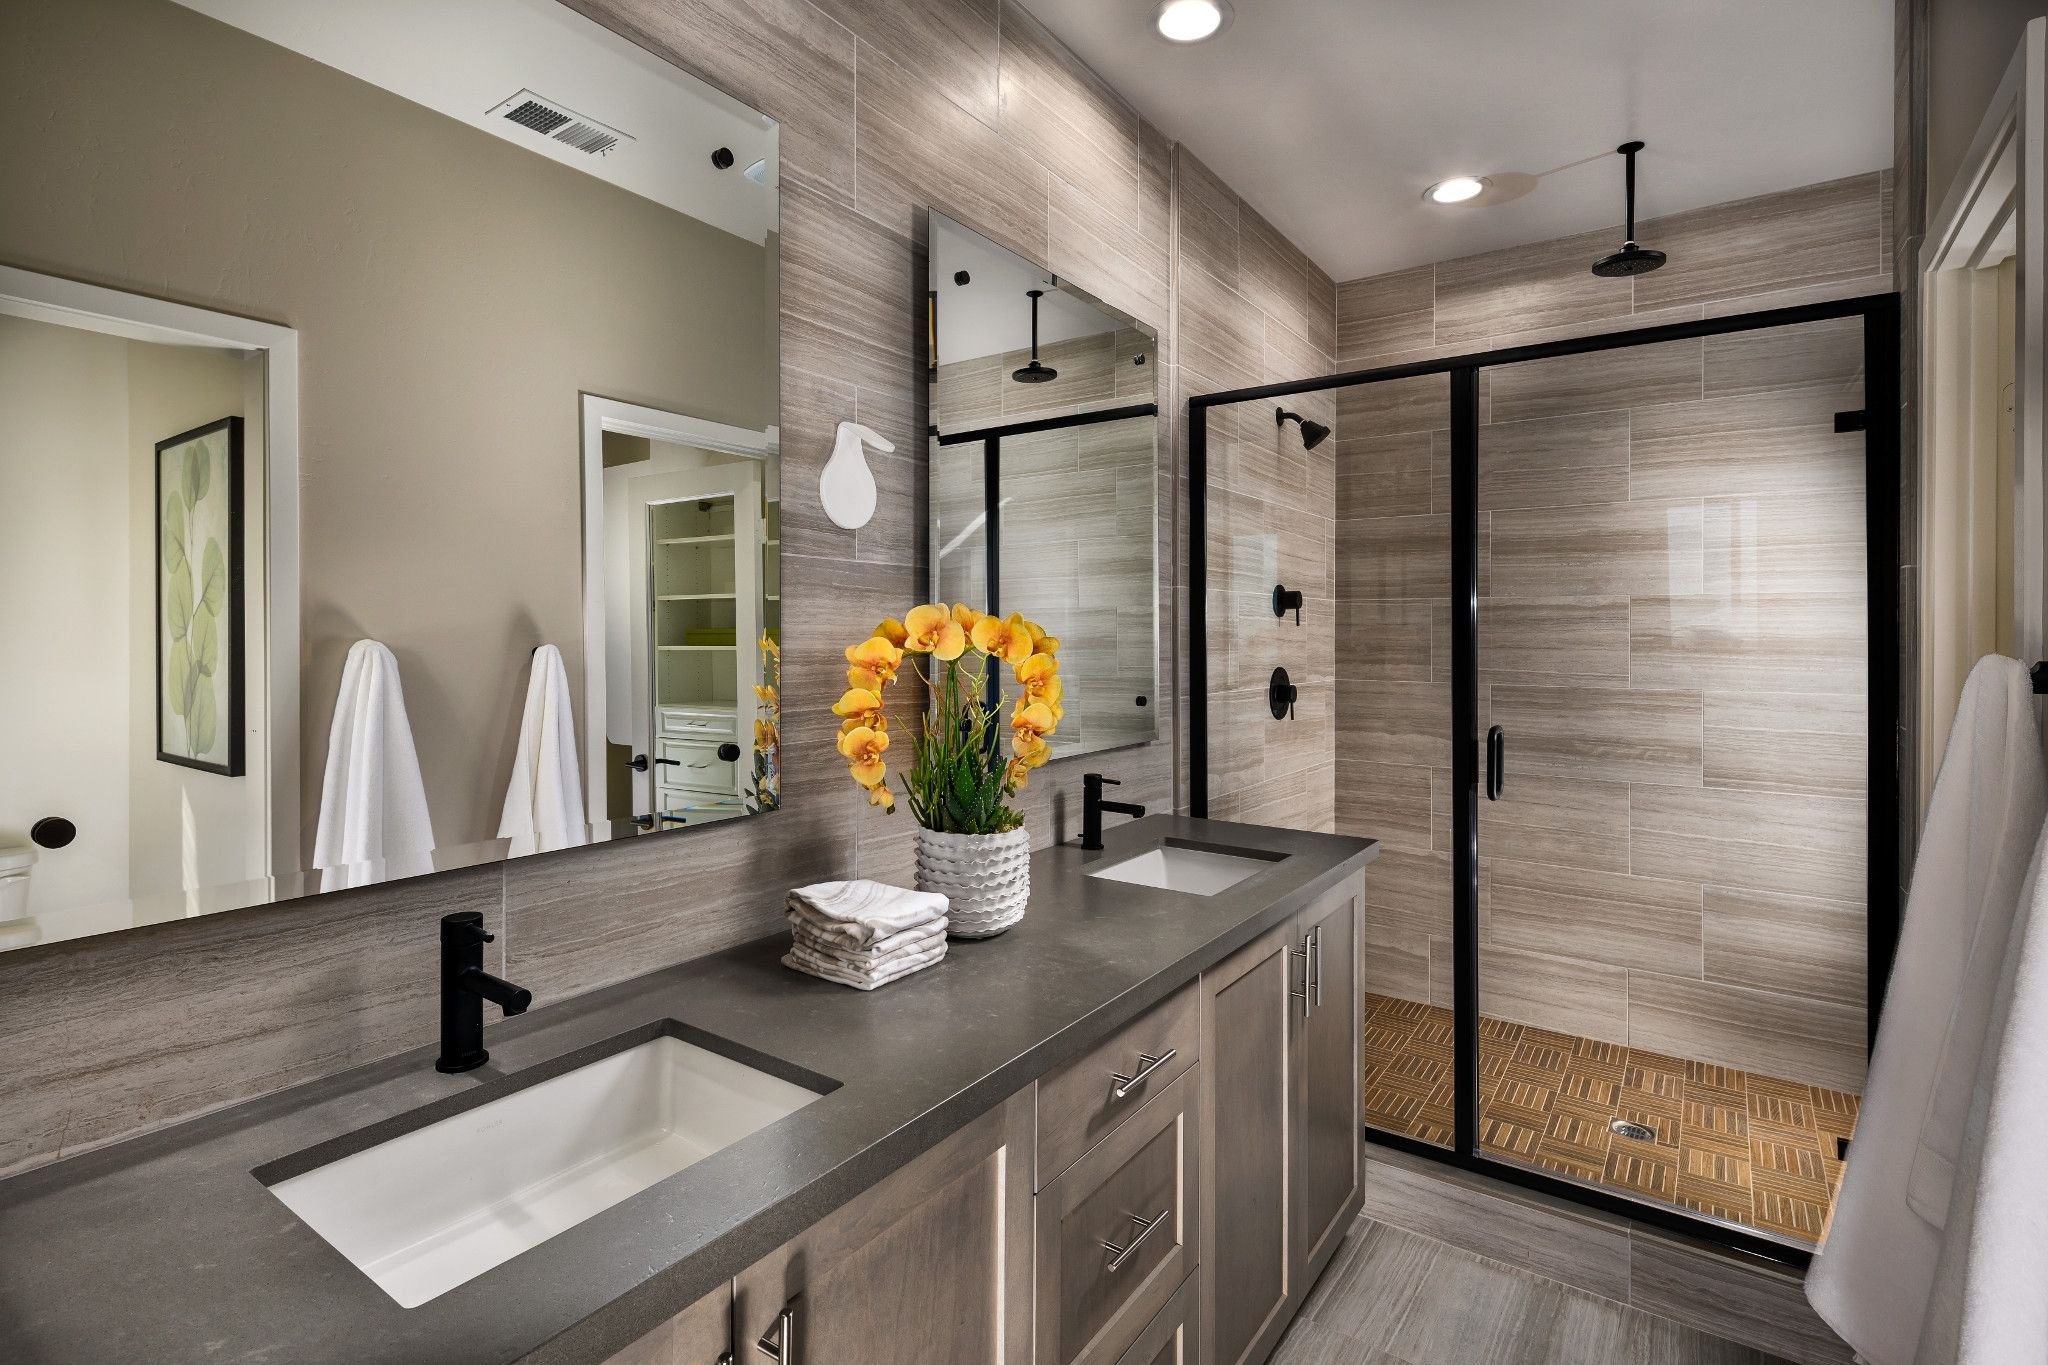 Bathroom featured in the Plan 3 By Shea Homes in San Diego, CA